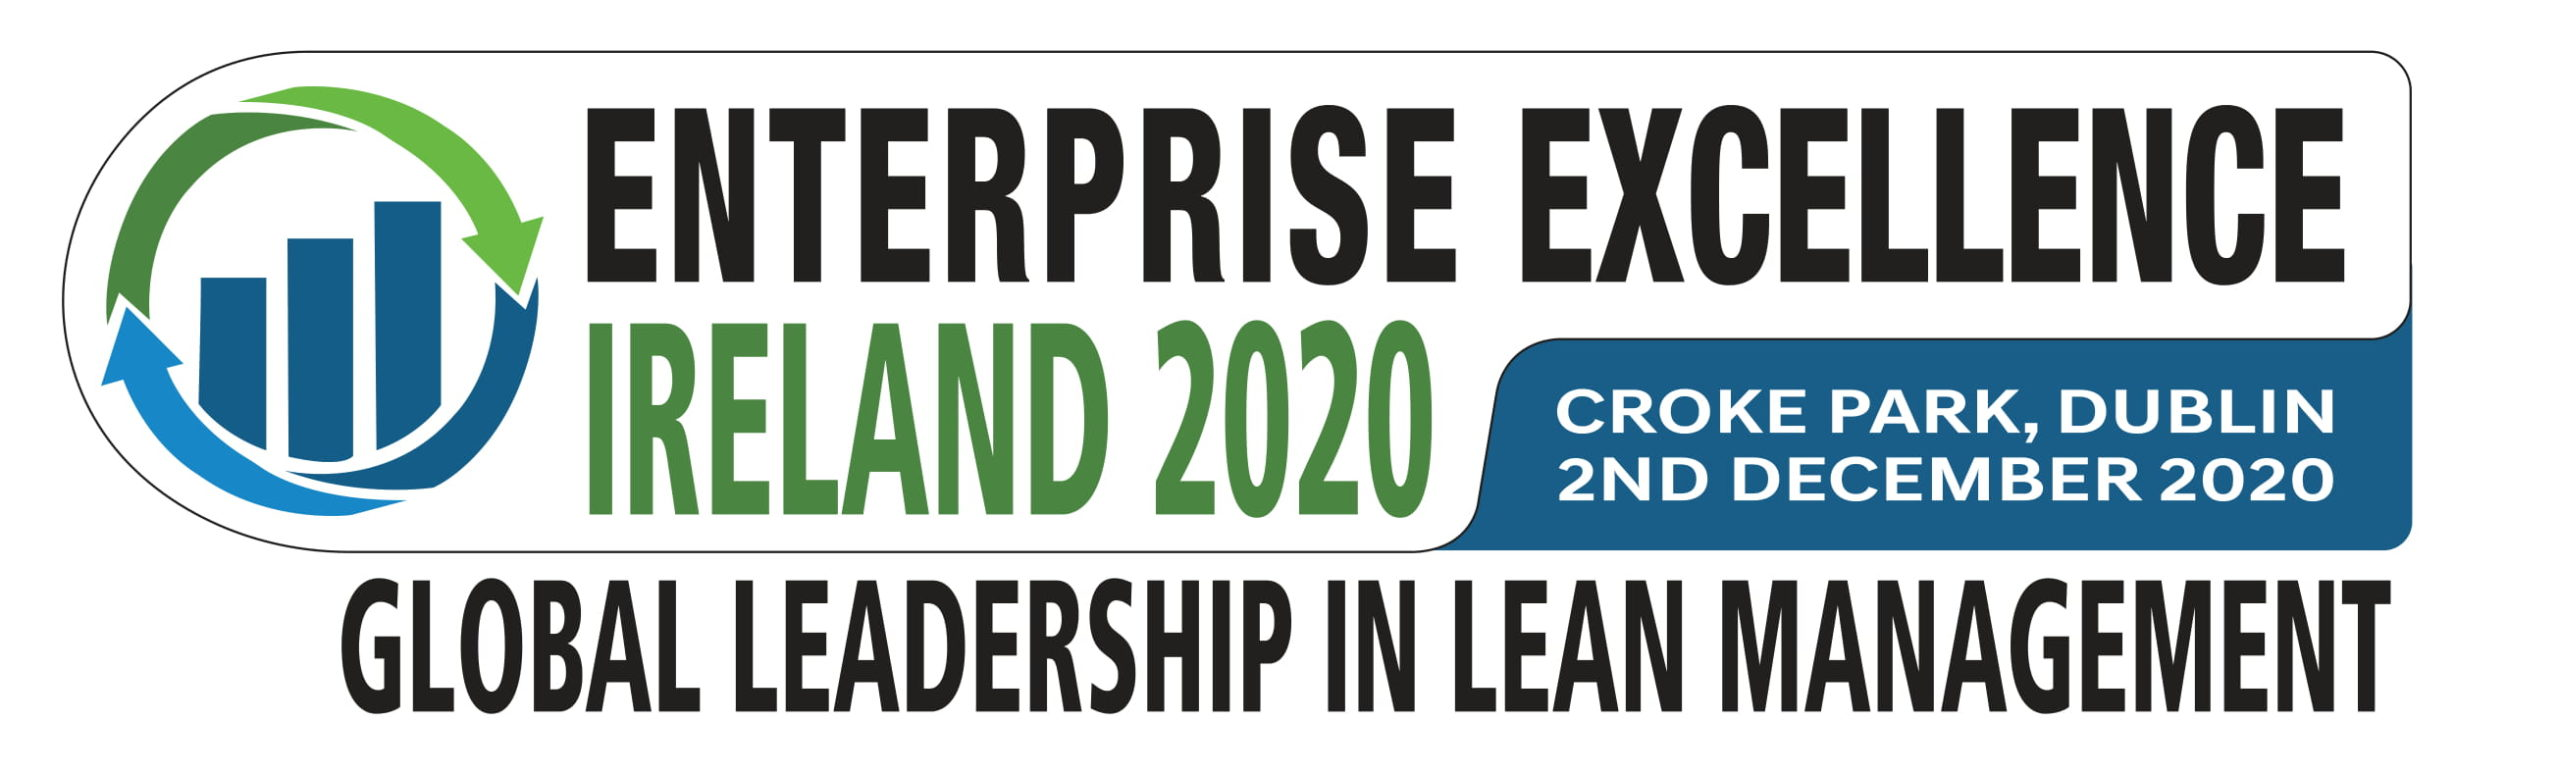 Enterprise Excellence Ireland 2020